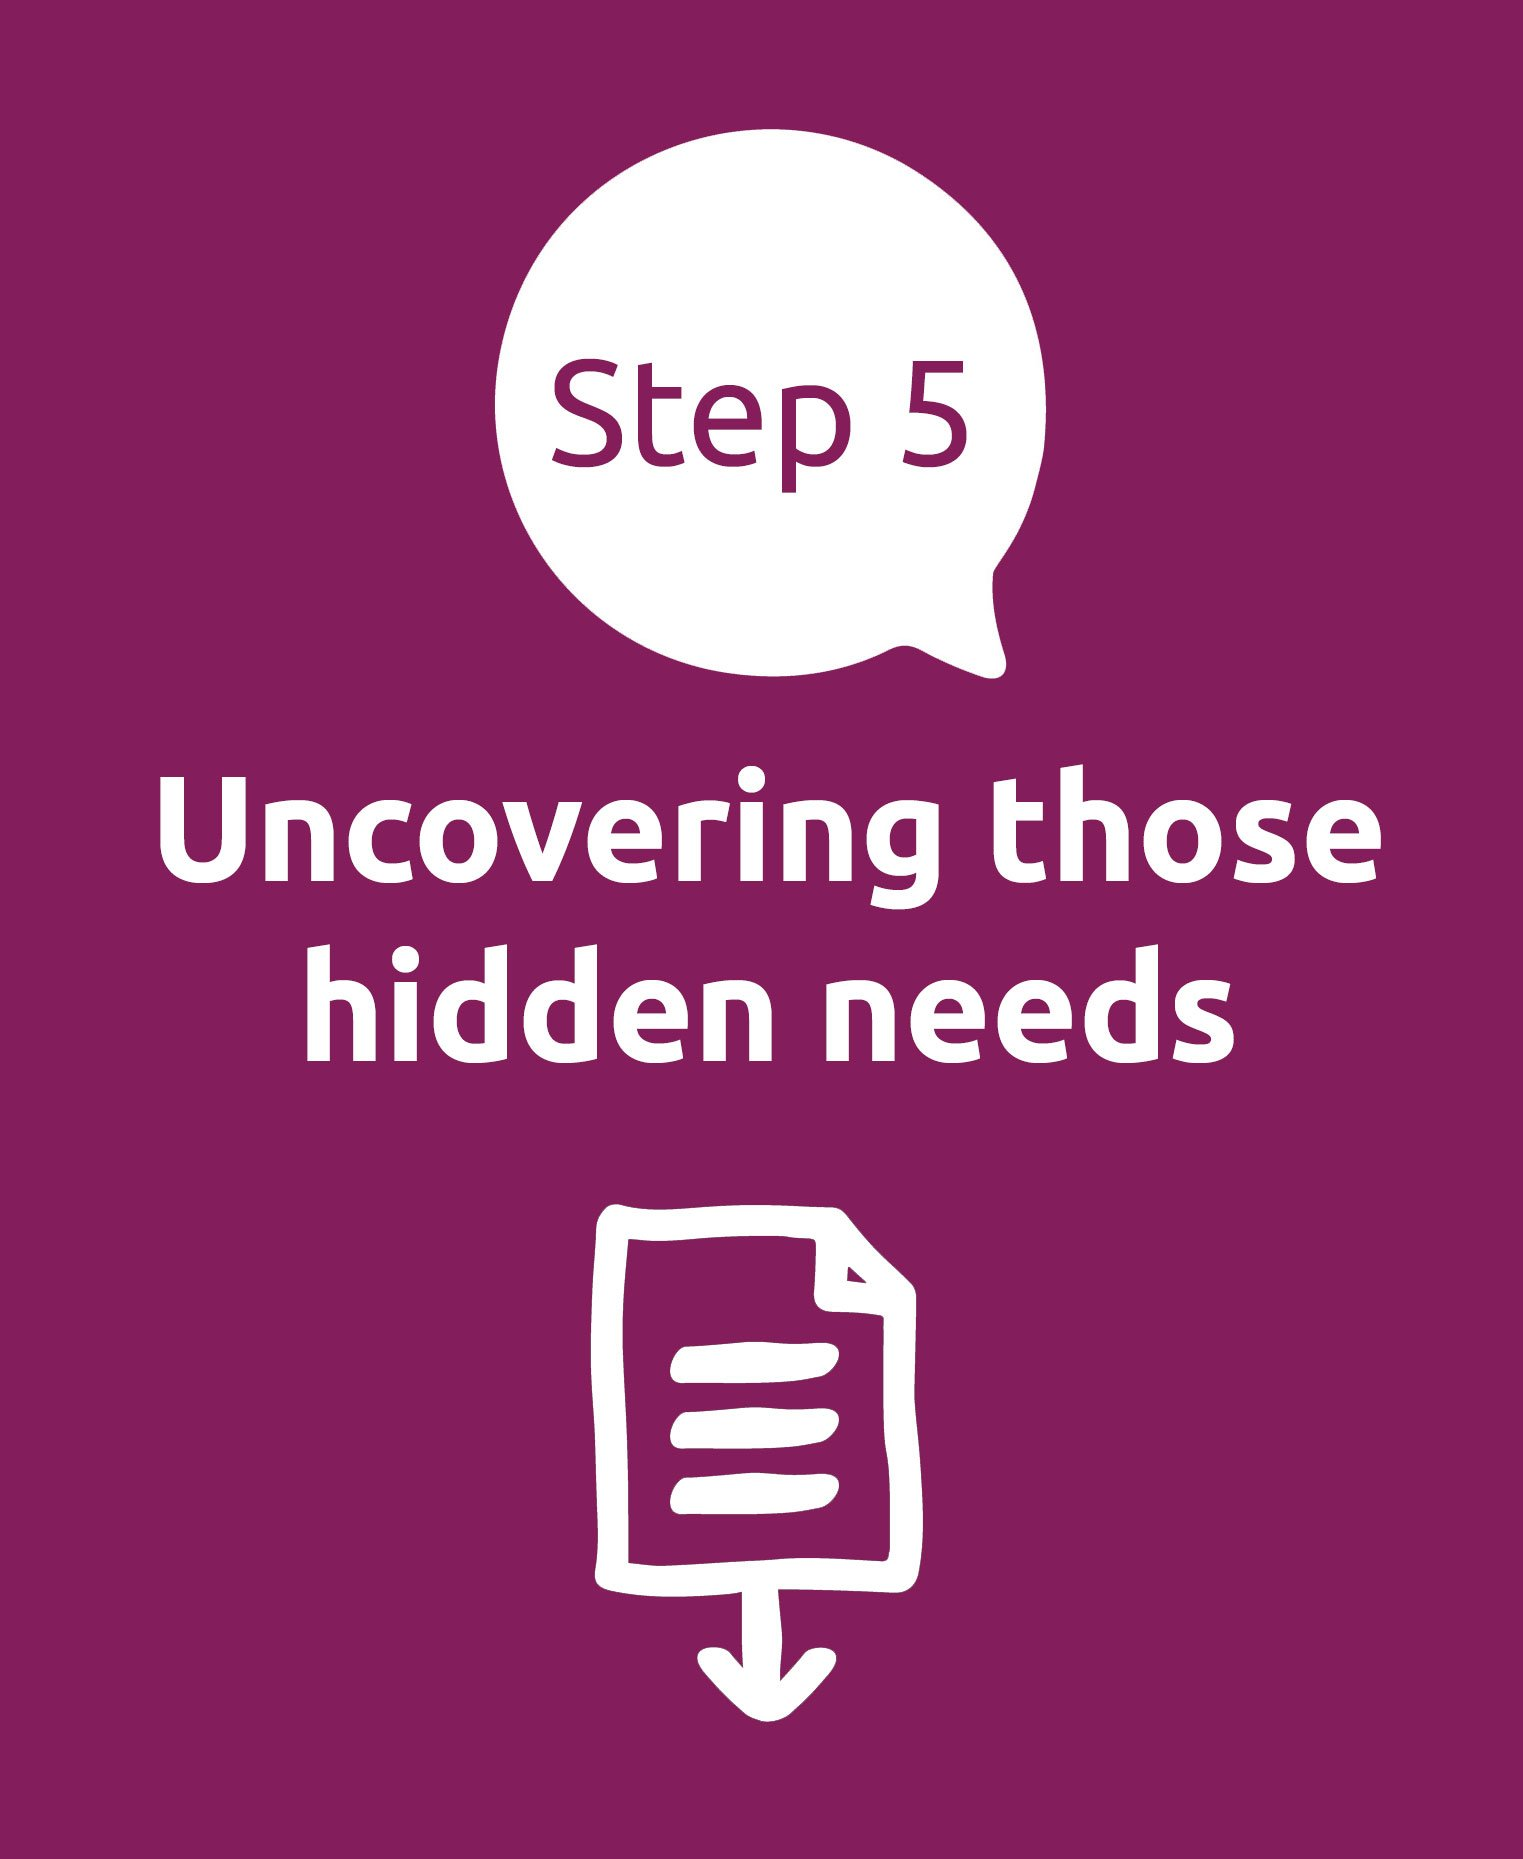 Uncovering those hidden needs